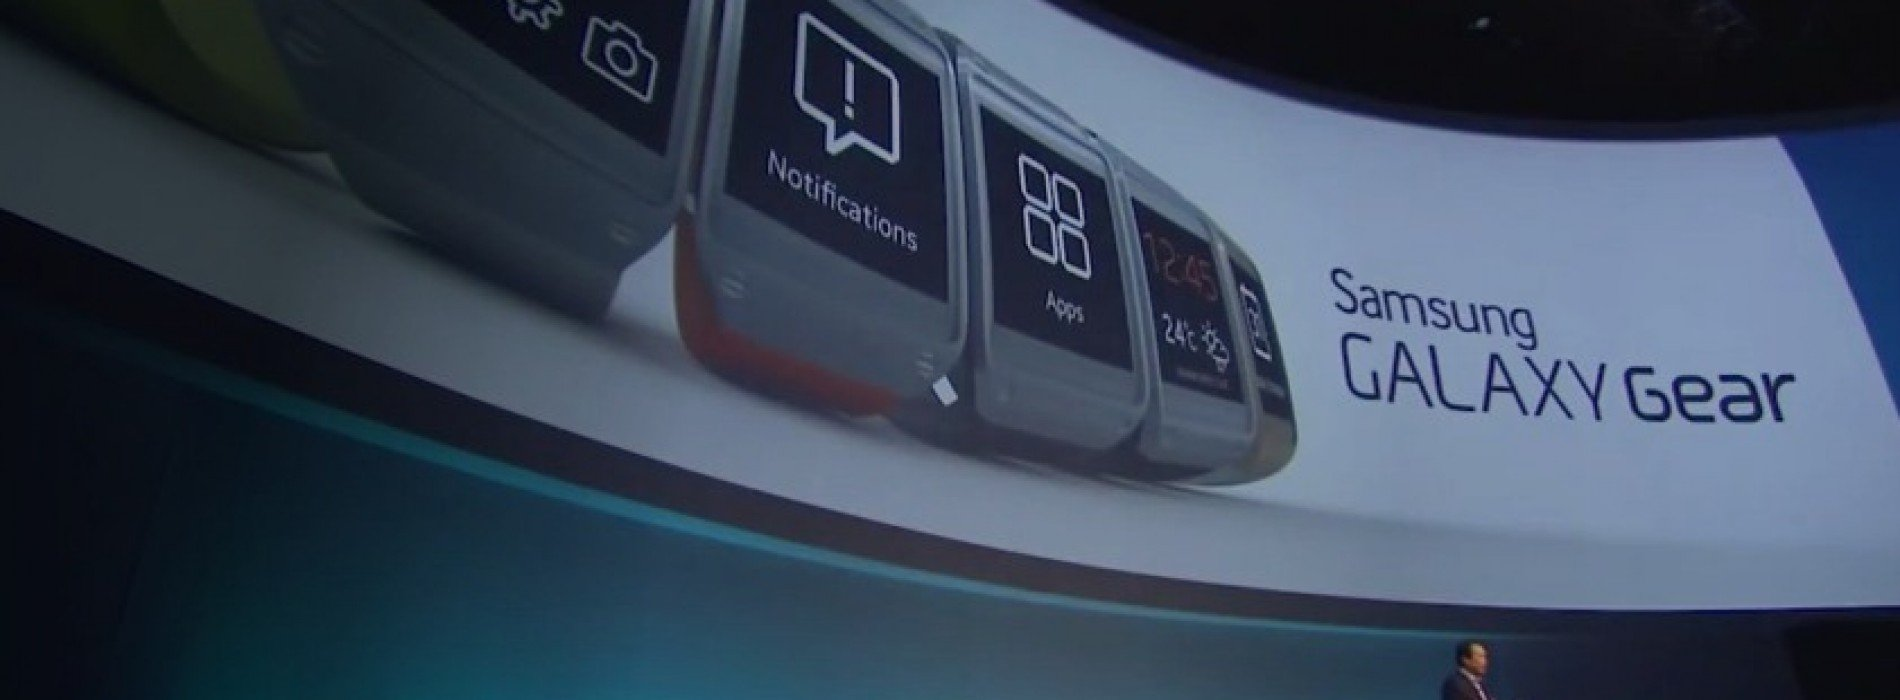 Samsung moves 800,000 Galaxy Gear smartwatches in first two months